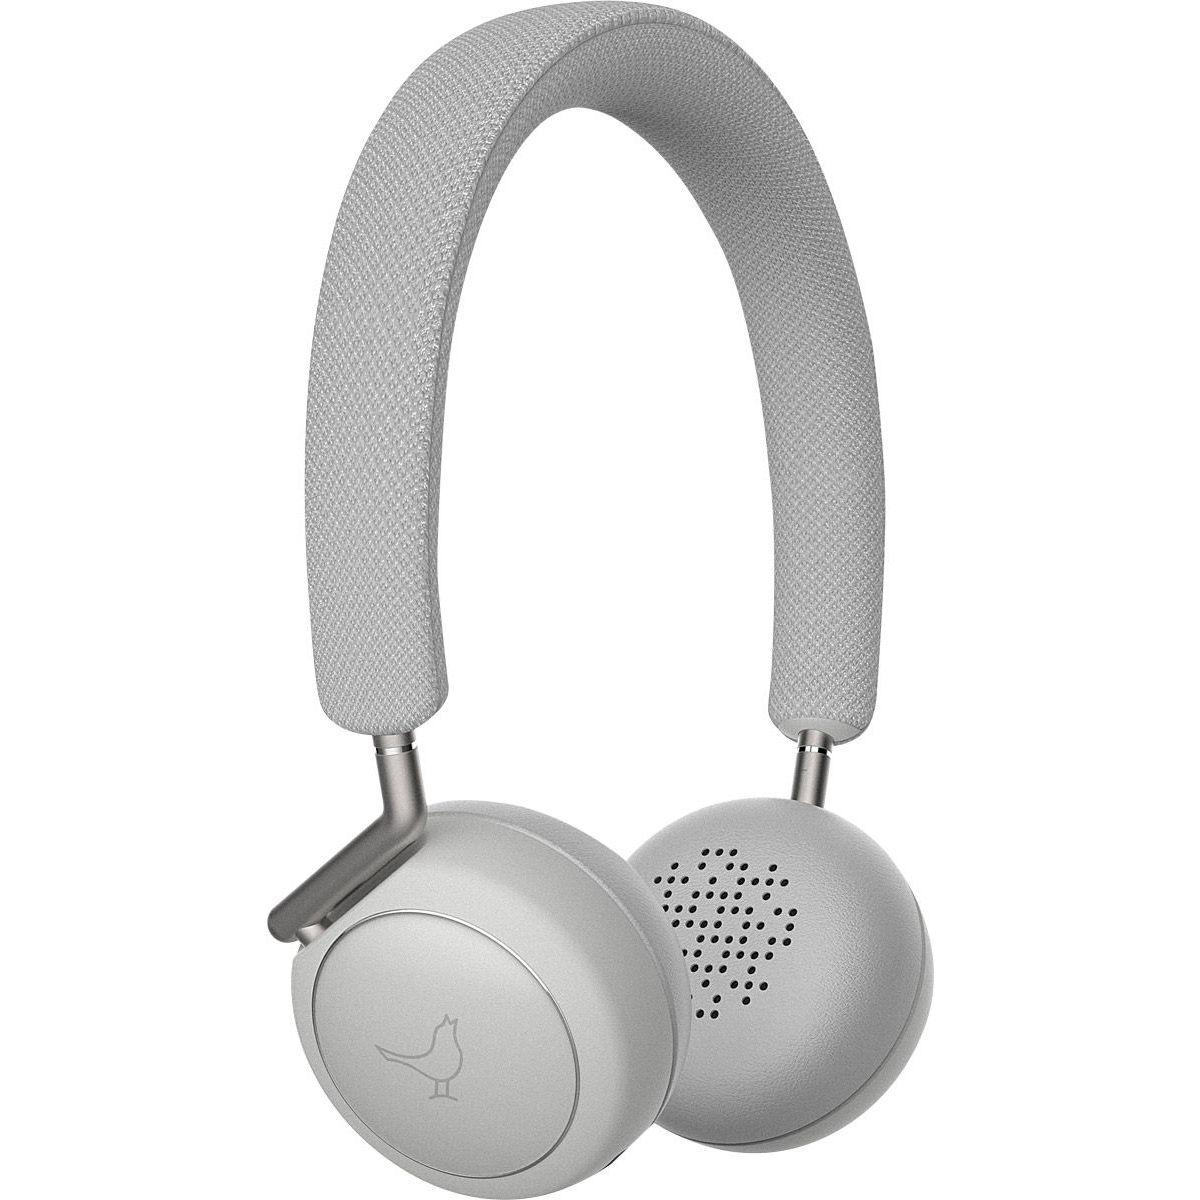 Casque libratone q adapt on-ear blanc - 7% de remise imm�diate avec le code : noel7 (photo)